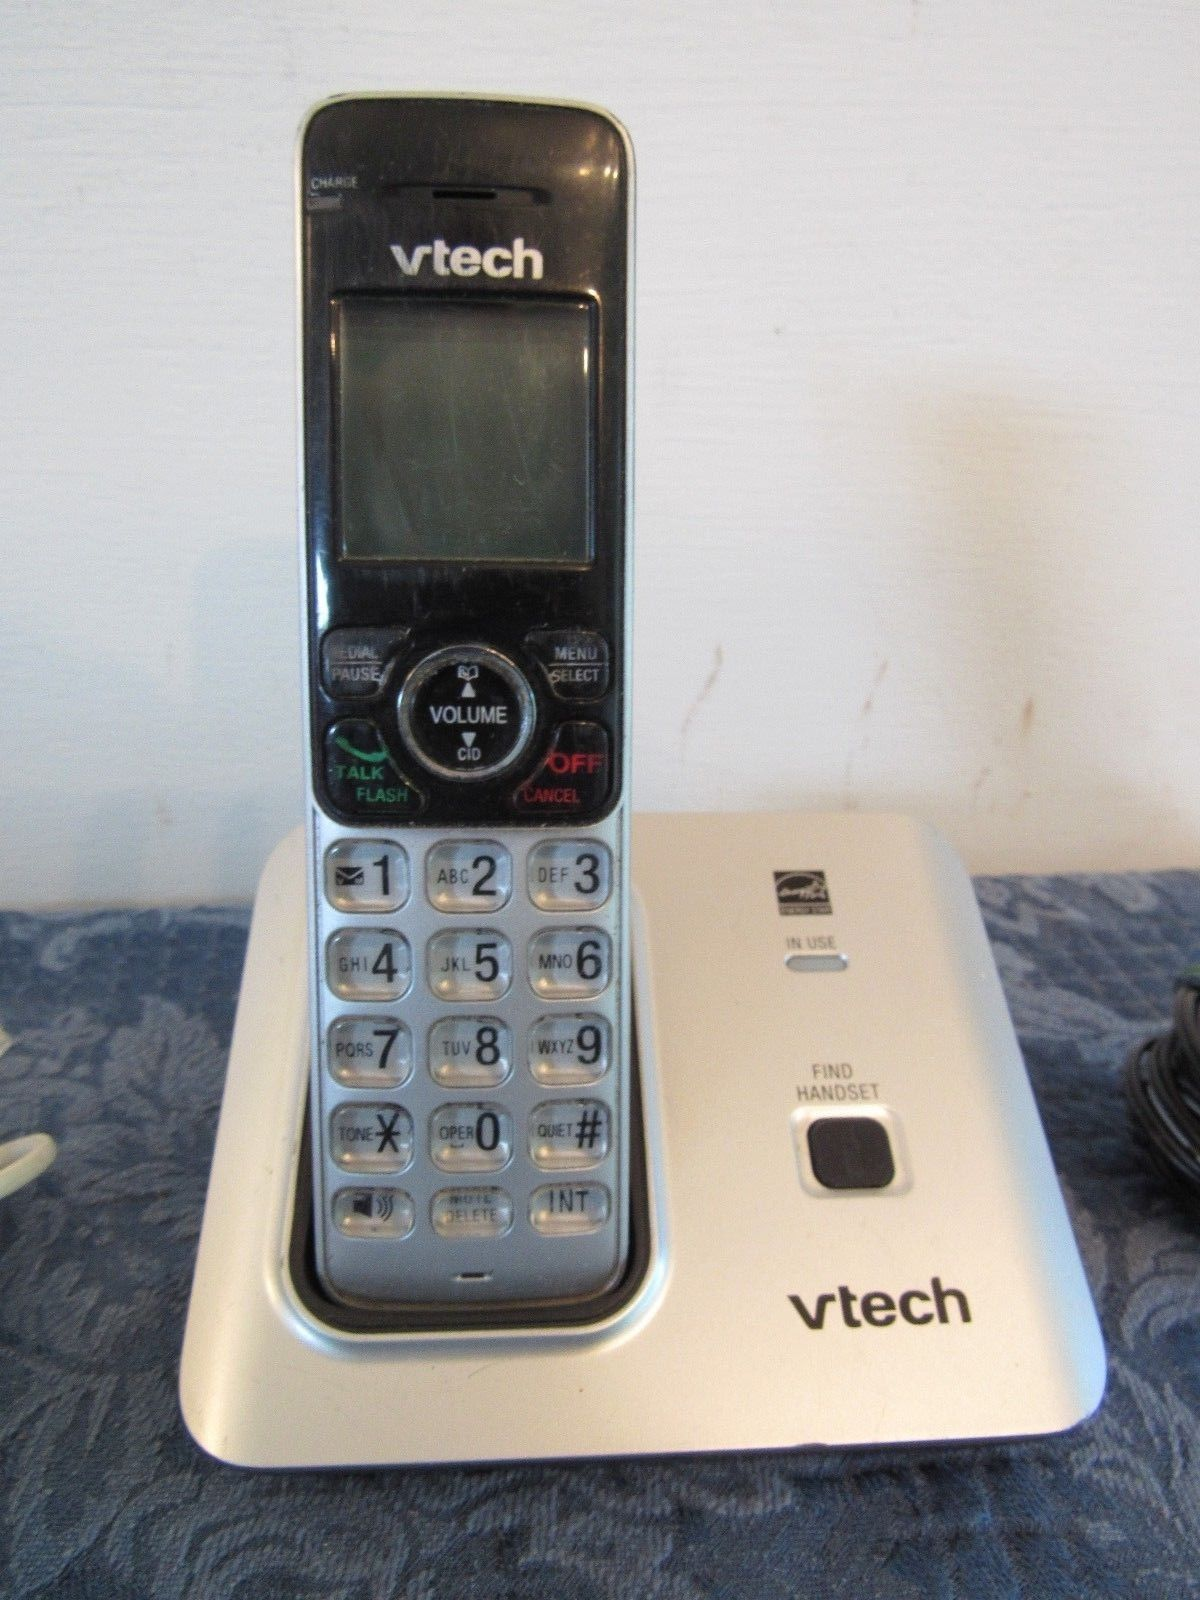 Vtech Cordless Phone System CS6619 + Base & Power Adapter Replacement